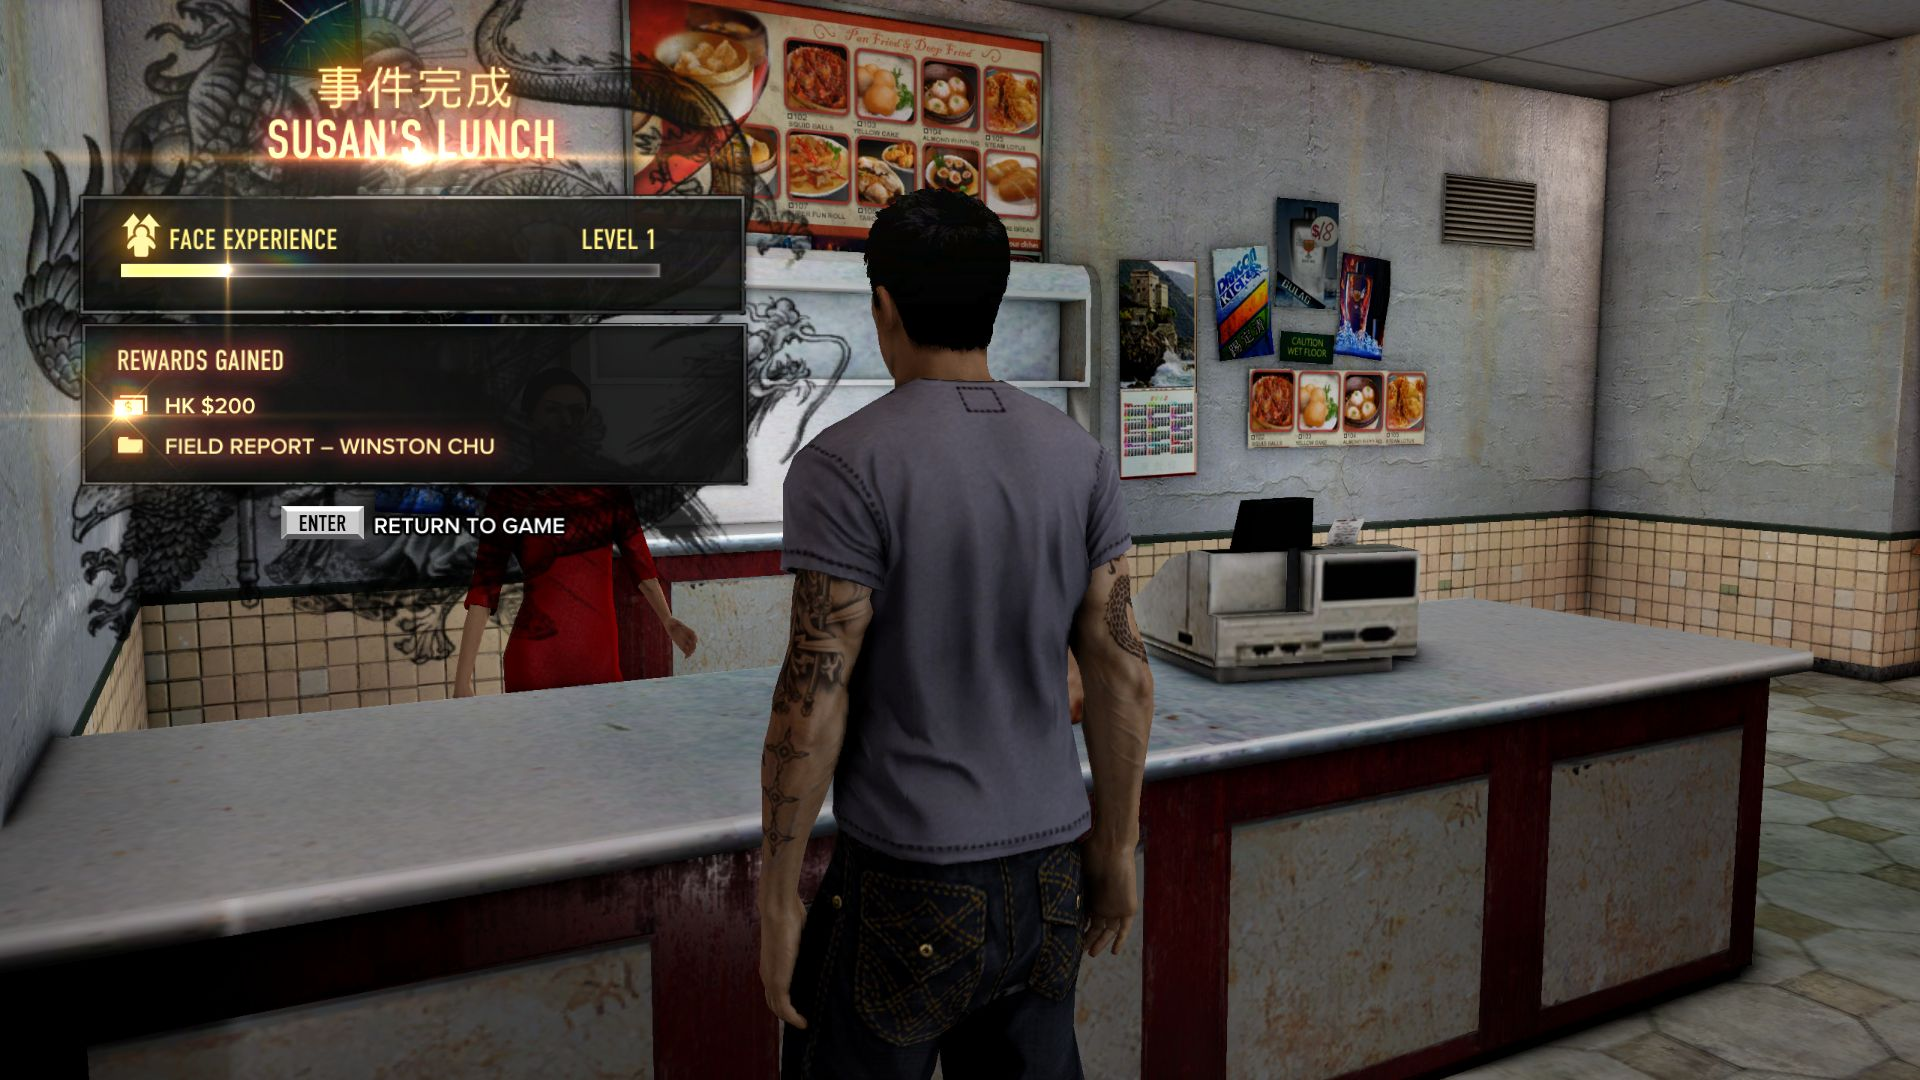 Can You Store Vehicles In The Garage In Sleeping Dogs